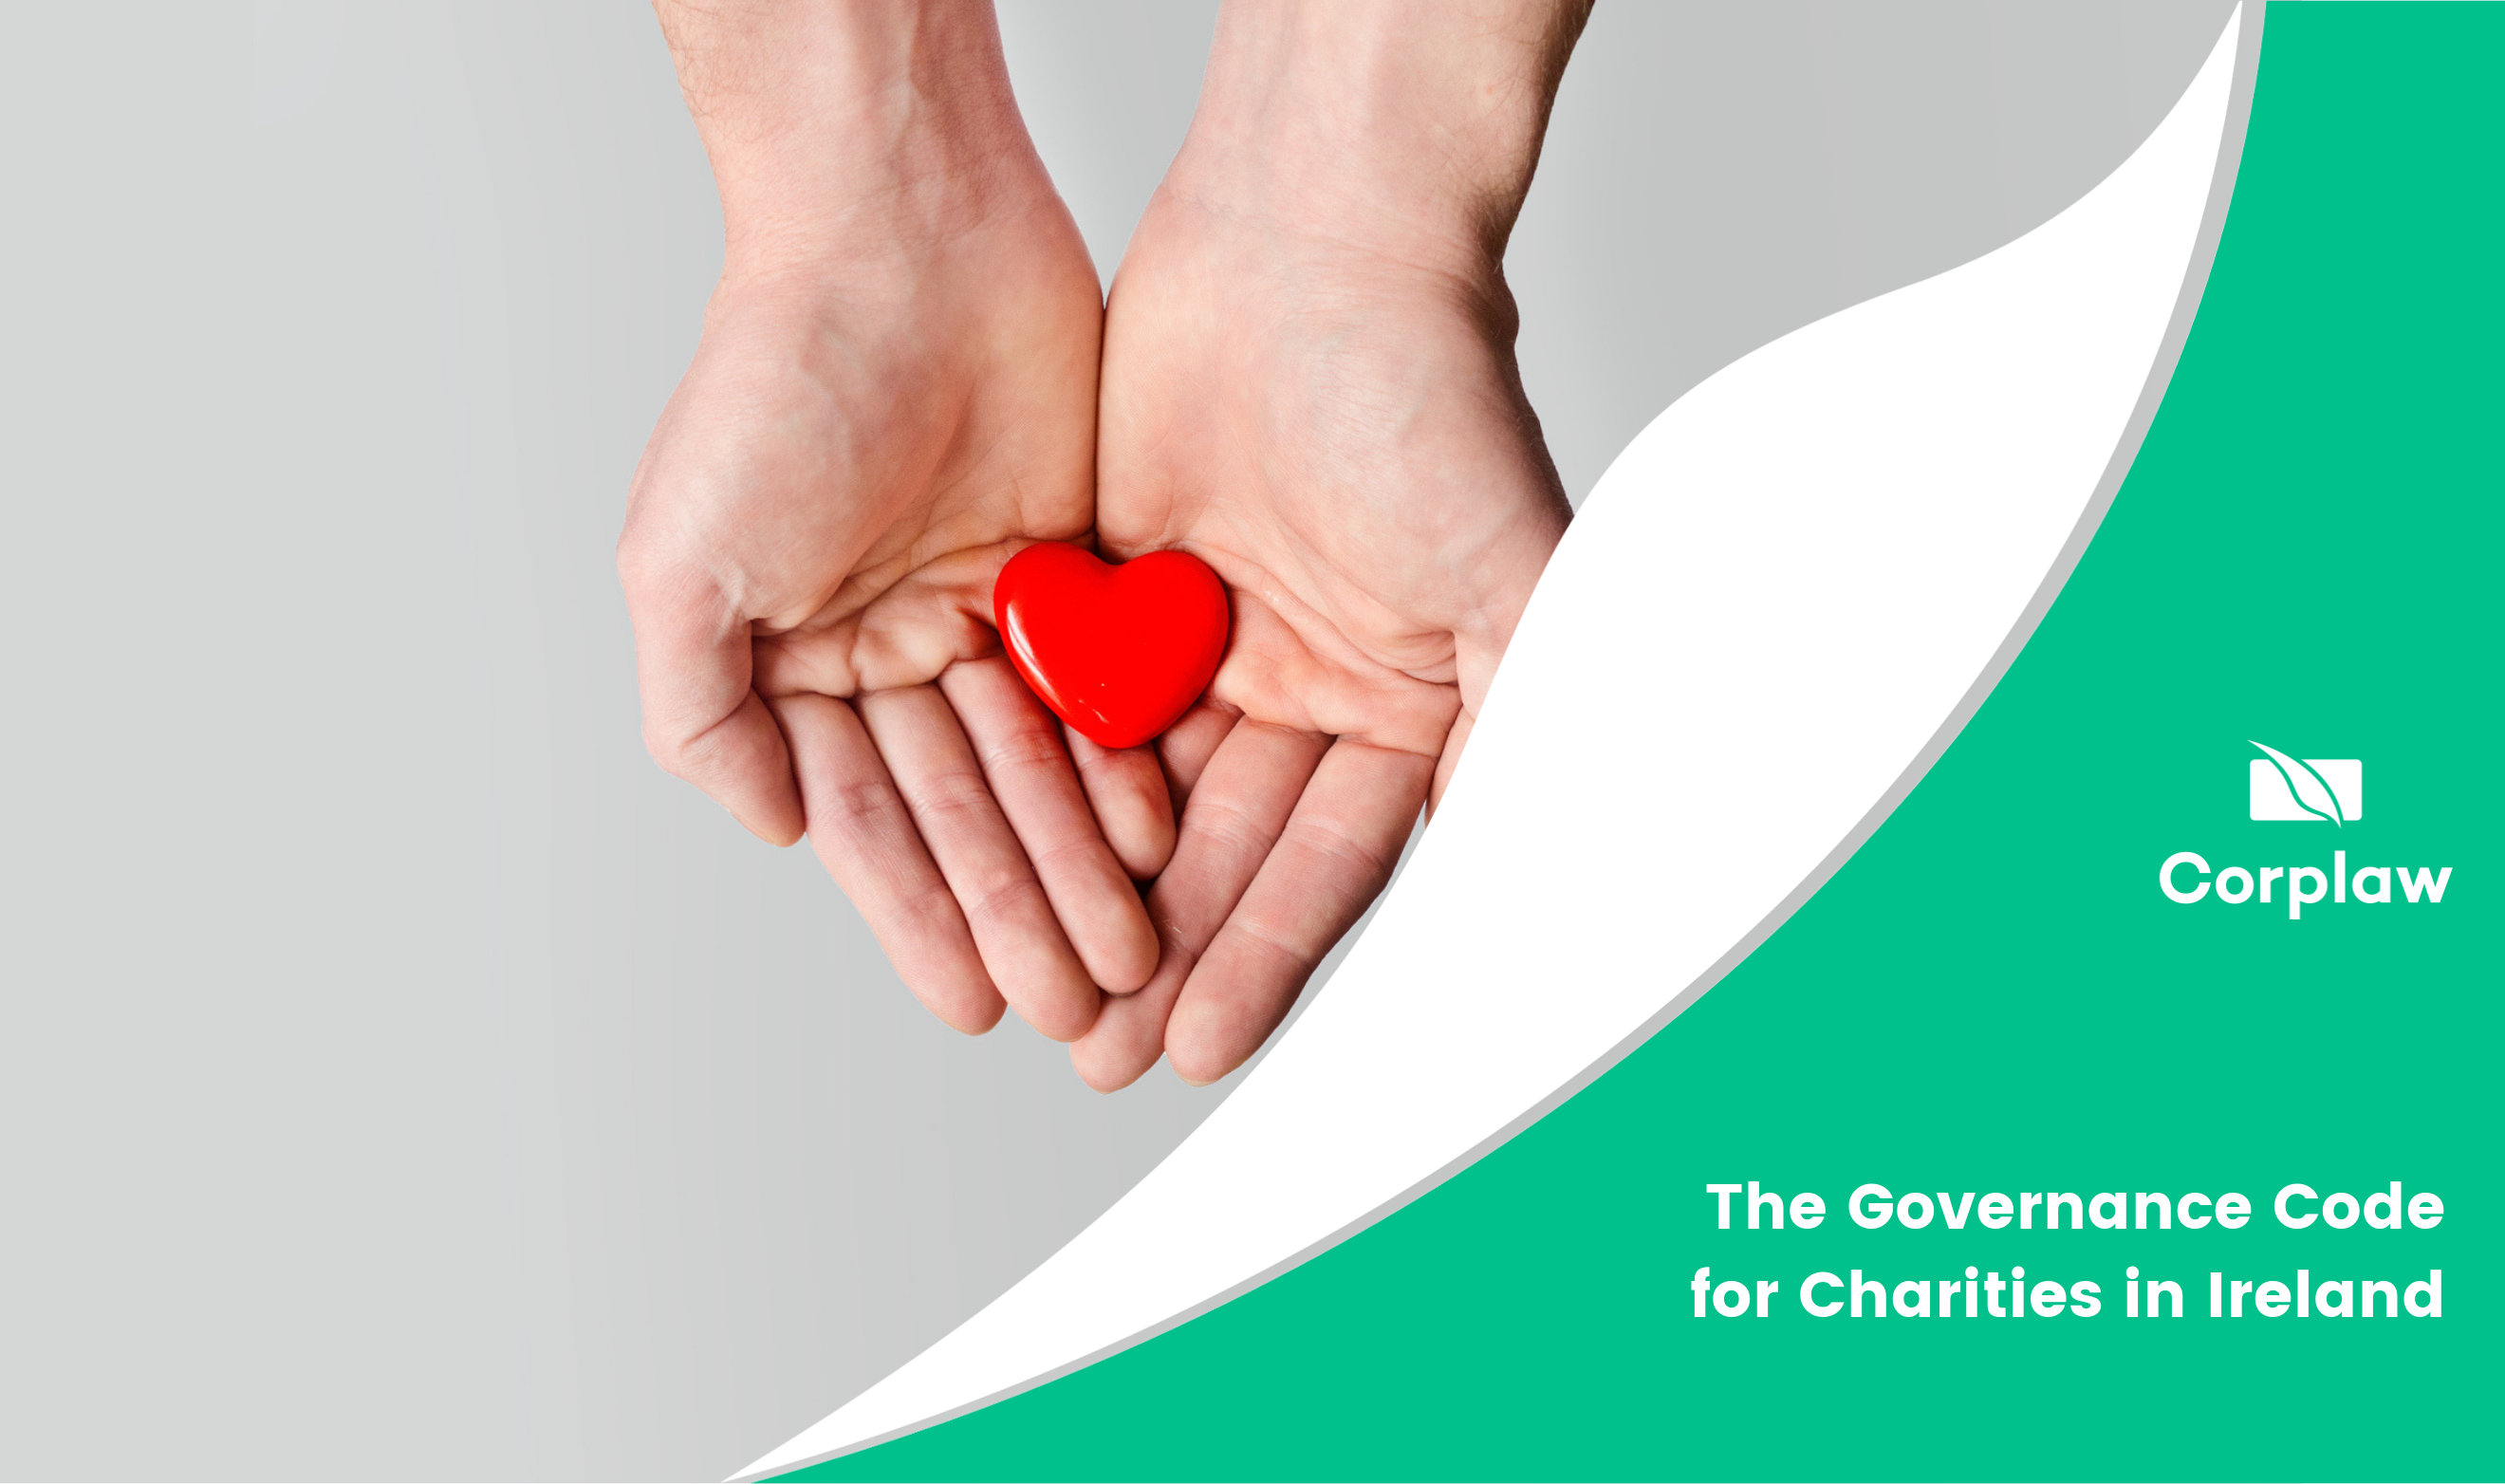 The Governance Code for Charities in Ireland